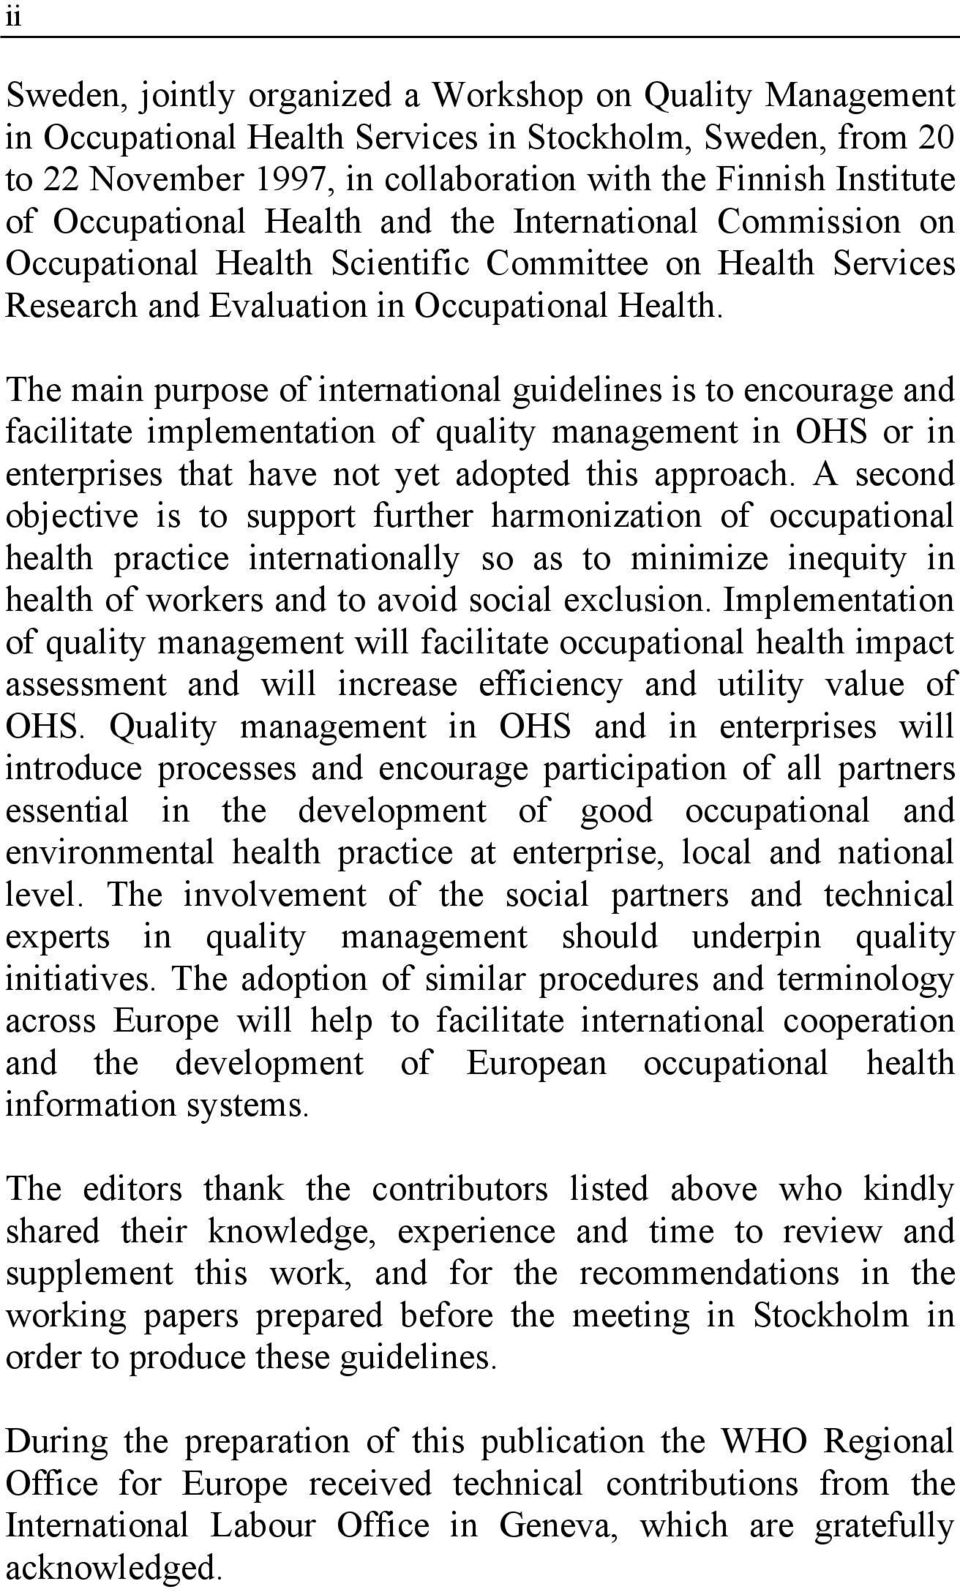 The main purpose of international guidelines is to encourage and facilitate implementation of quality management in OHS or in enterprises that have not yet adopted this approach.